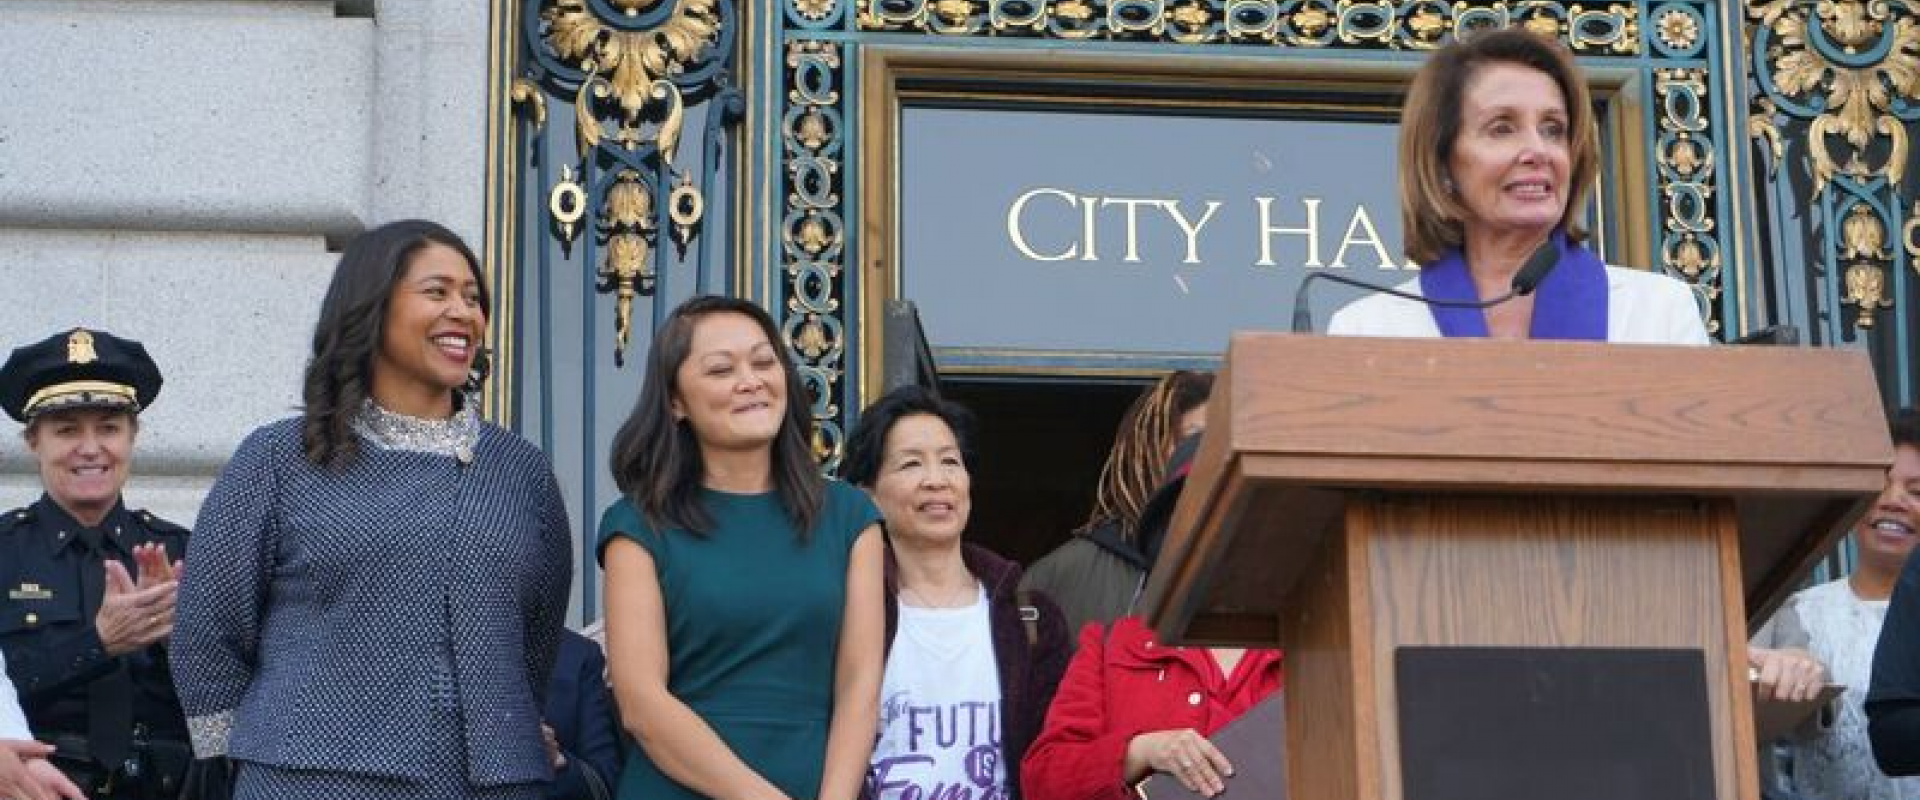 Congresswomen Pelosi joined Mayor London Breed, Assessor-Recorder Carmen Chu, and local women leaders for the Women's Equality Day 'W Challenge' kick-off to unite women from across sectors and the political spectrum to expand voter participation, as we co